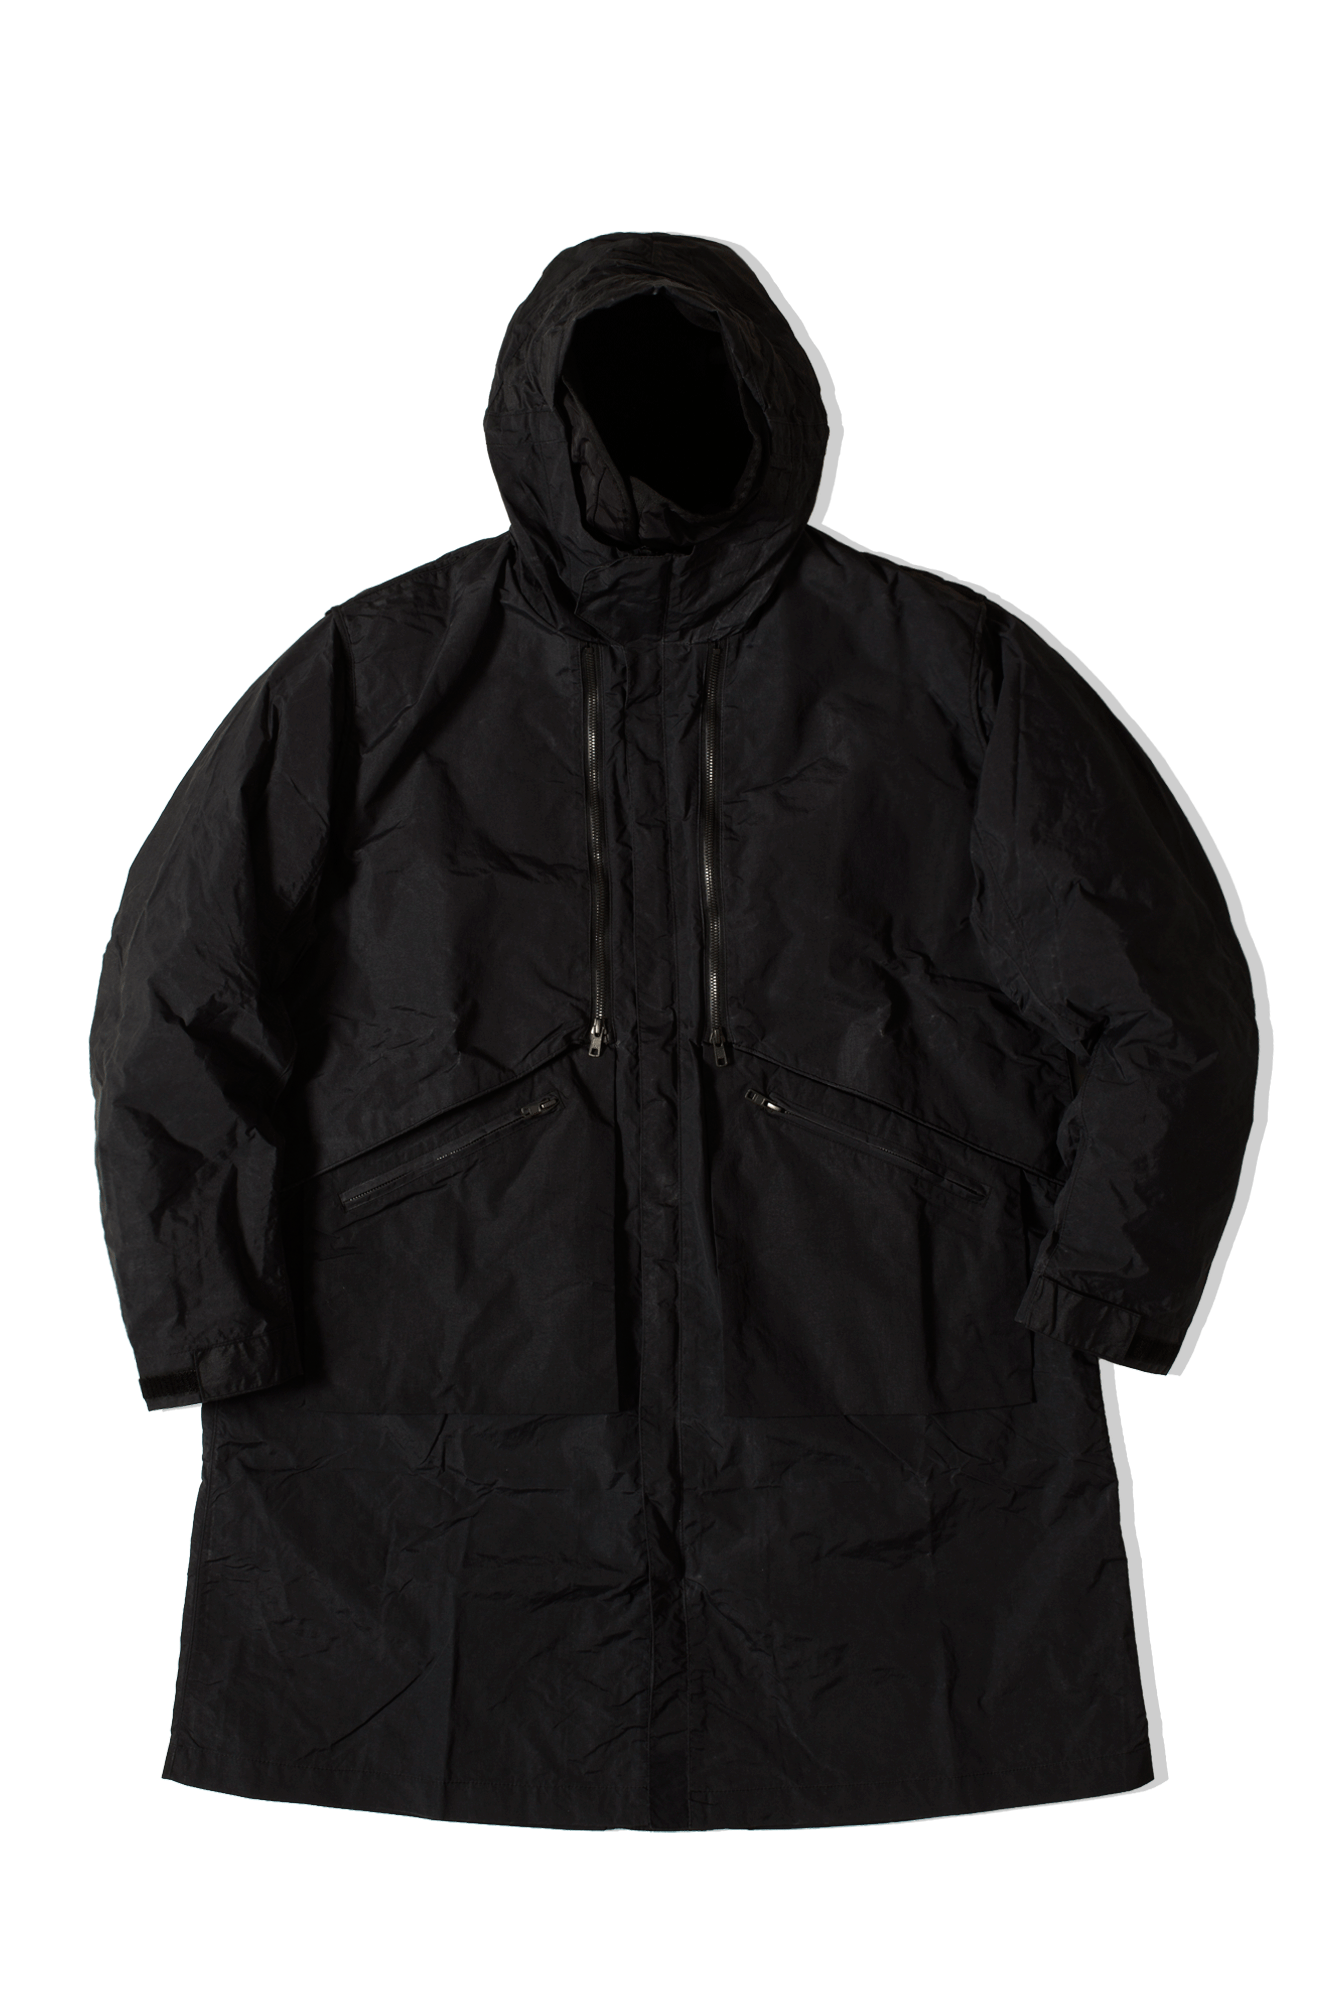 FW19-MPK-03 Trench Coat Black